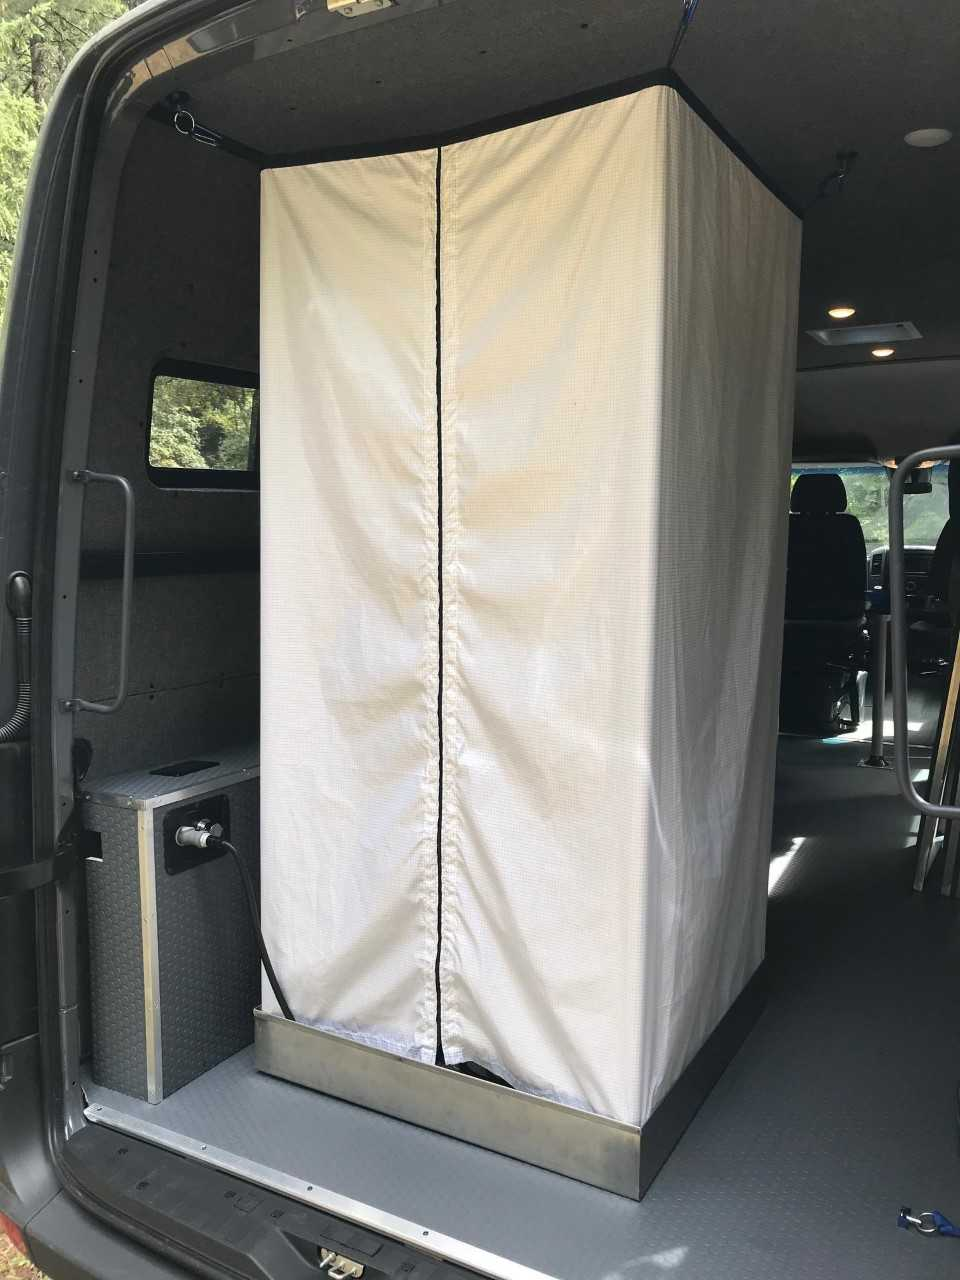 Sprinter Shower Kit for DIY Camper Van Conversions – Sprinter Upgrades